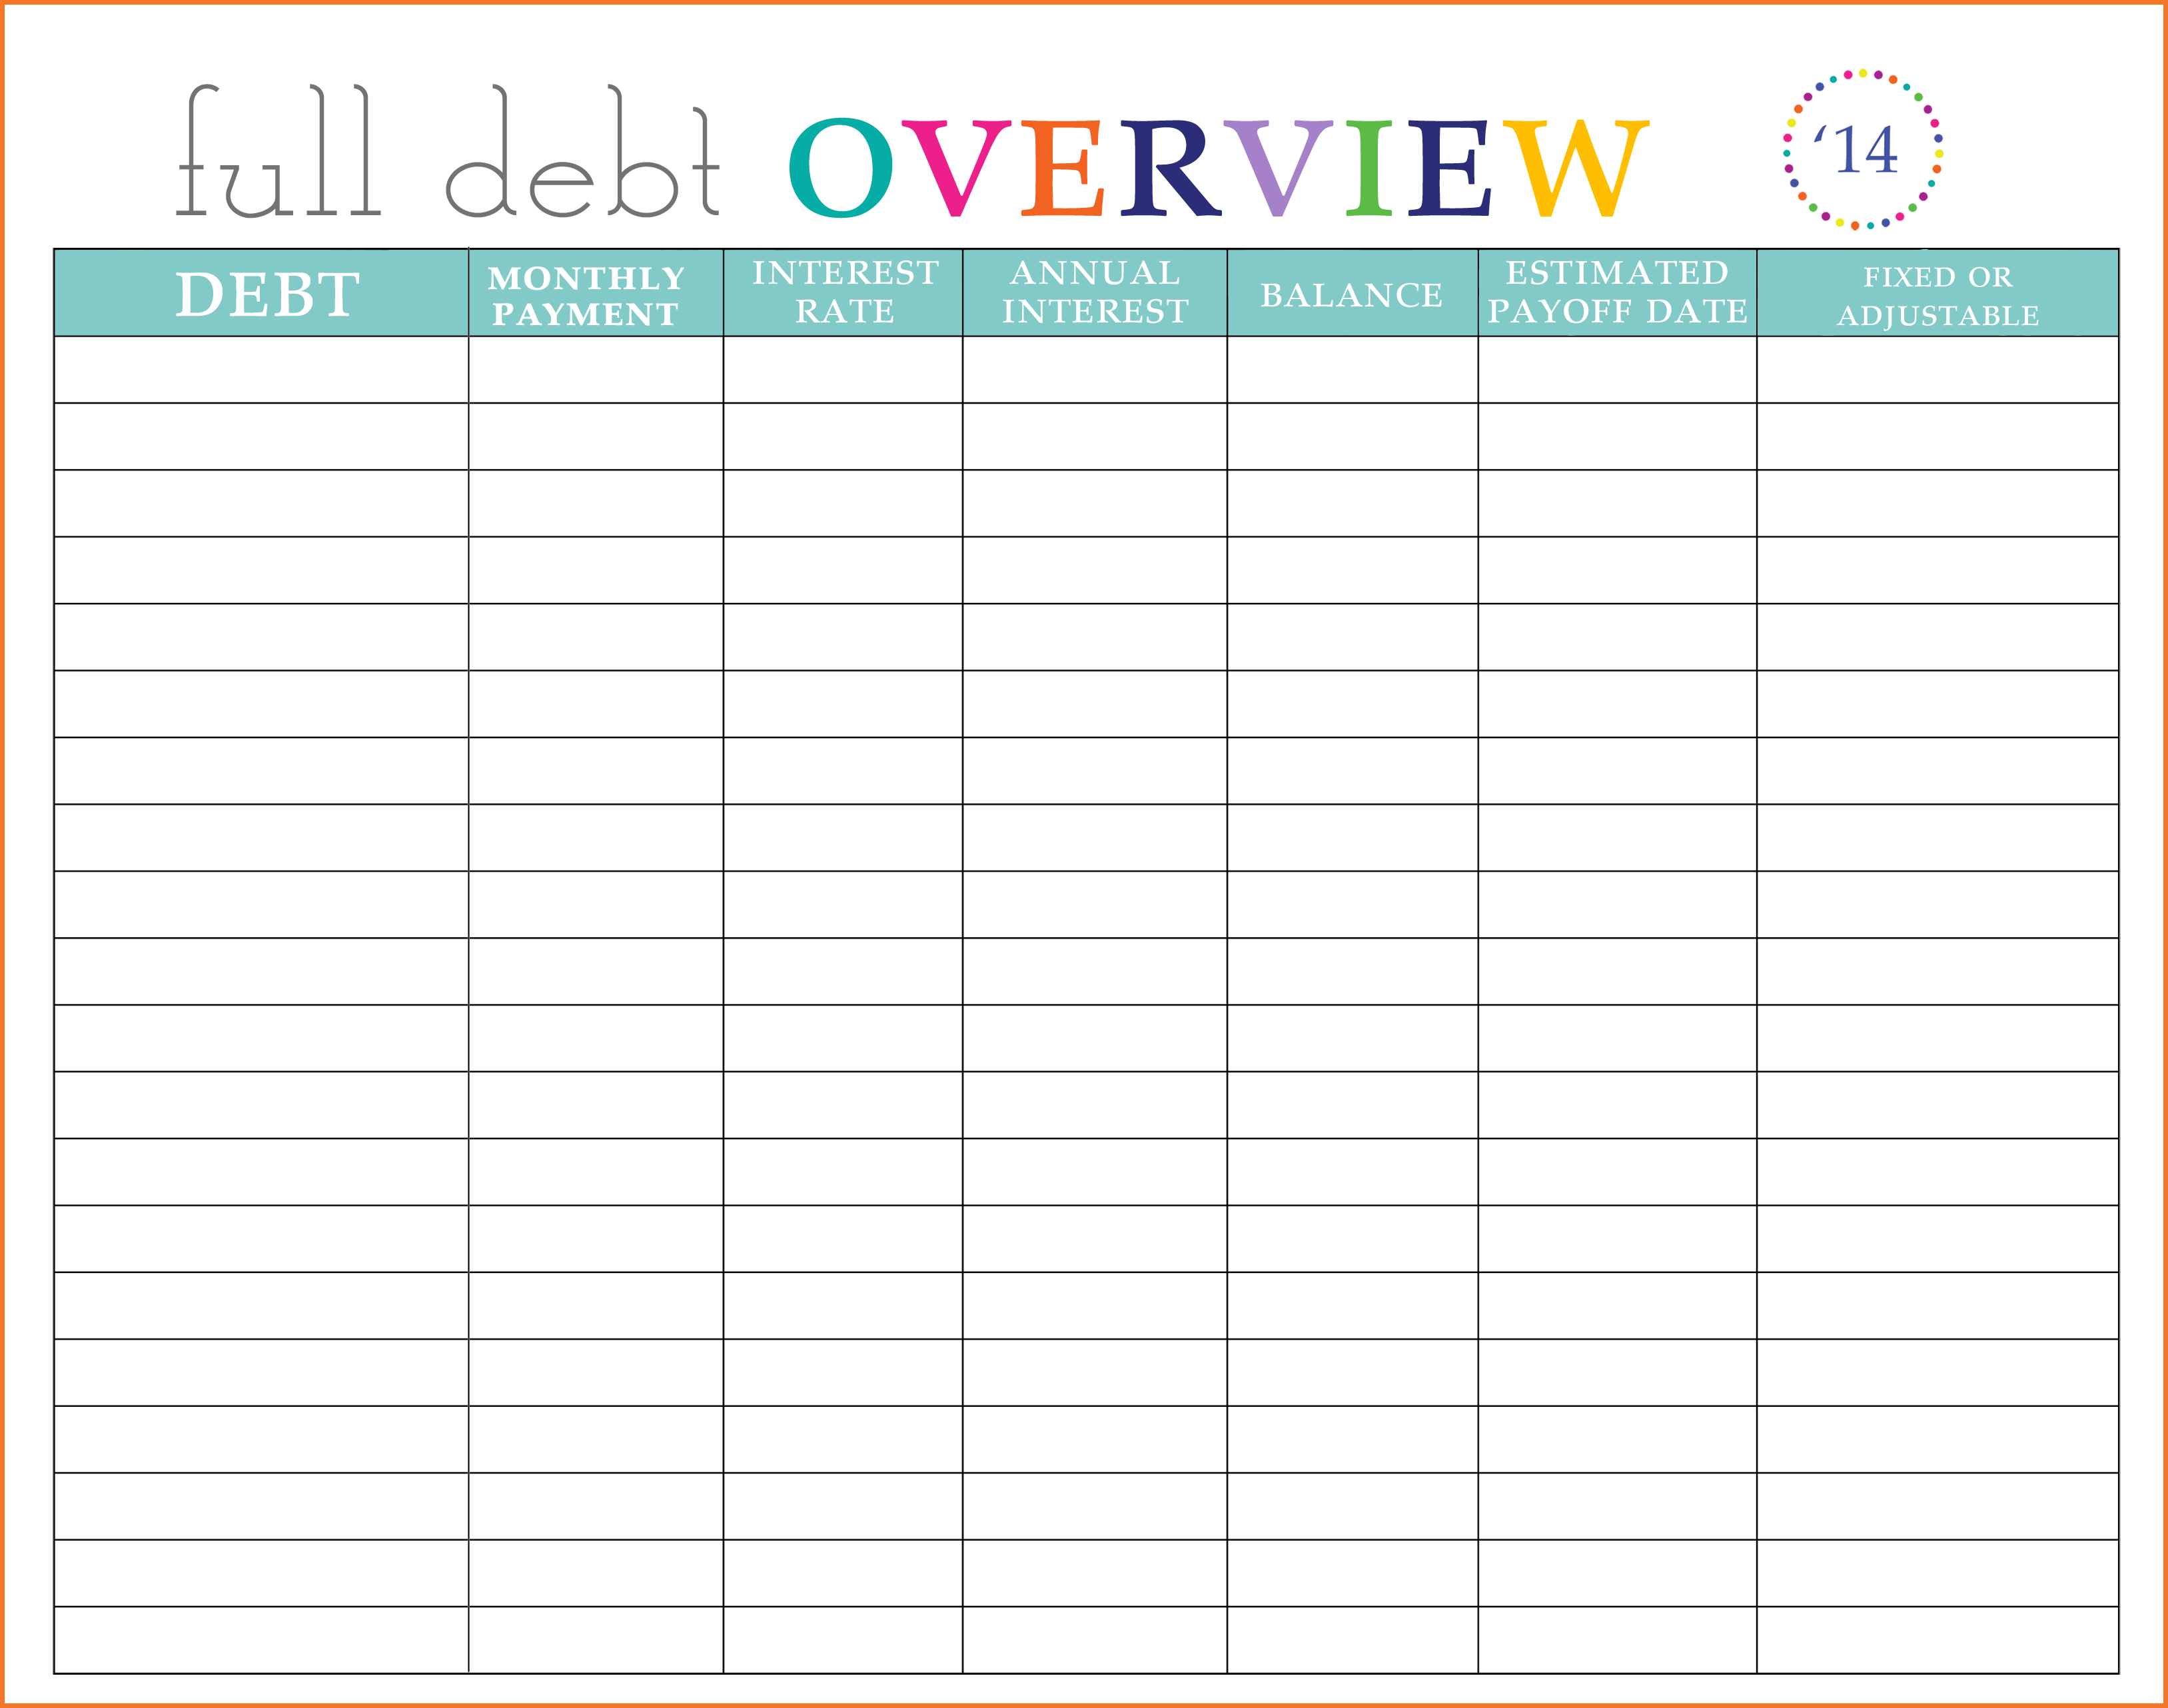 Free Tax Spreadsheet Templates Australia Regarding Free Spreadsheet Templates For Small Business With Blank Excel Sheet